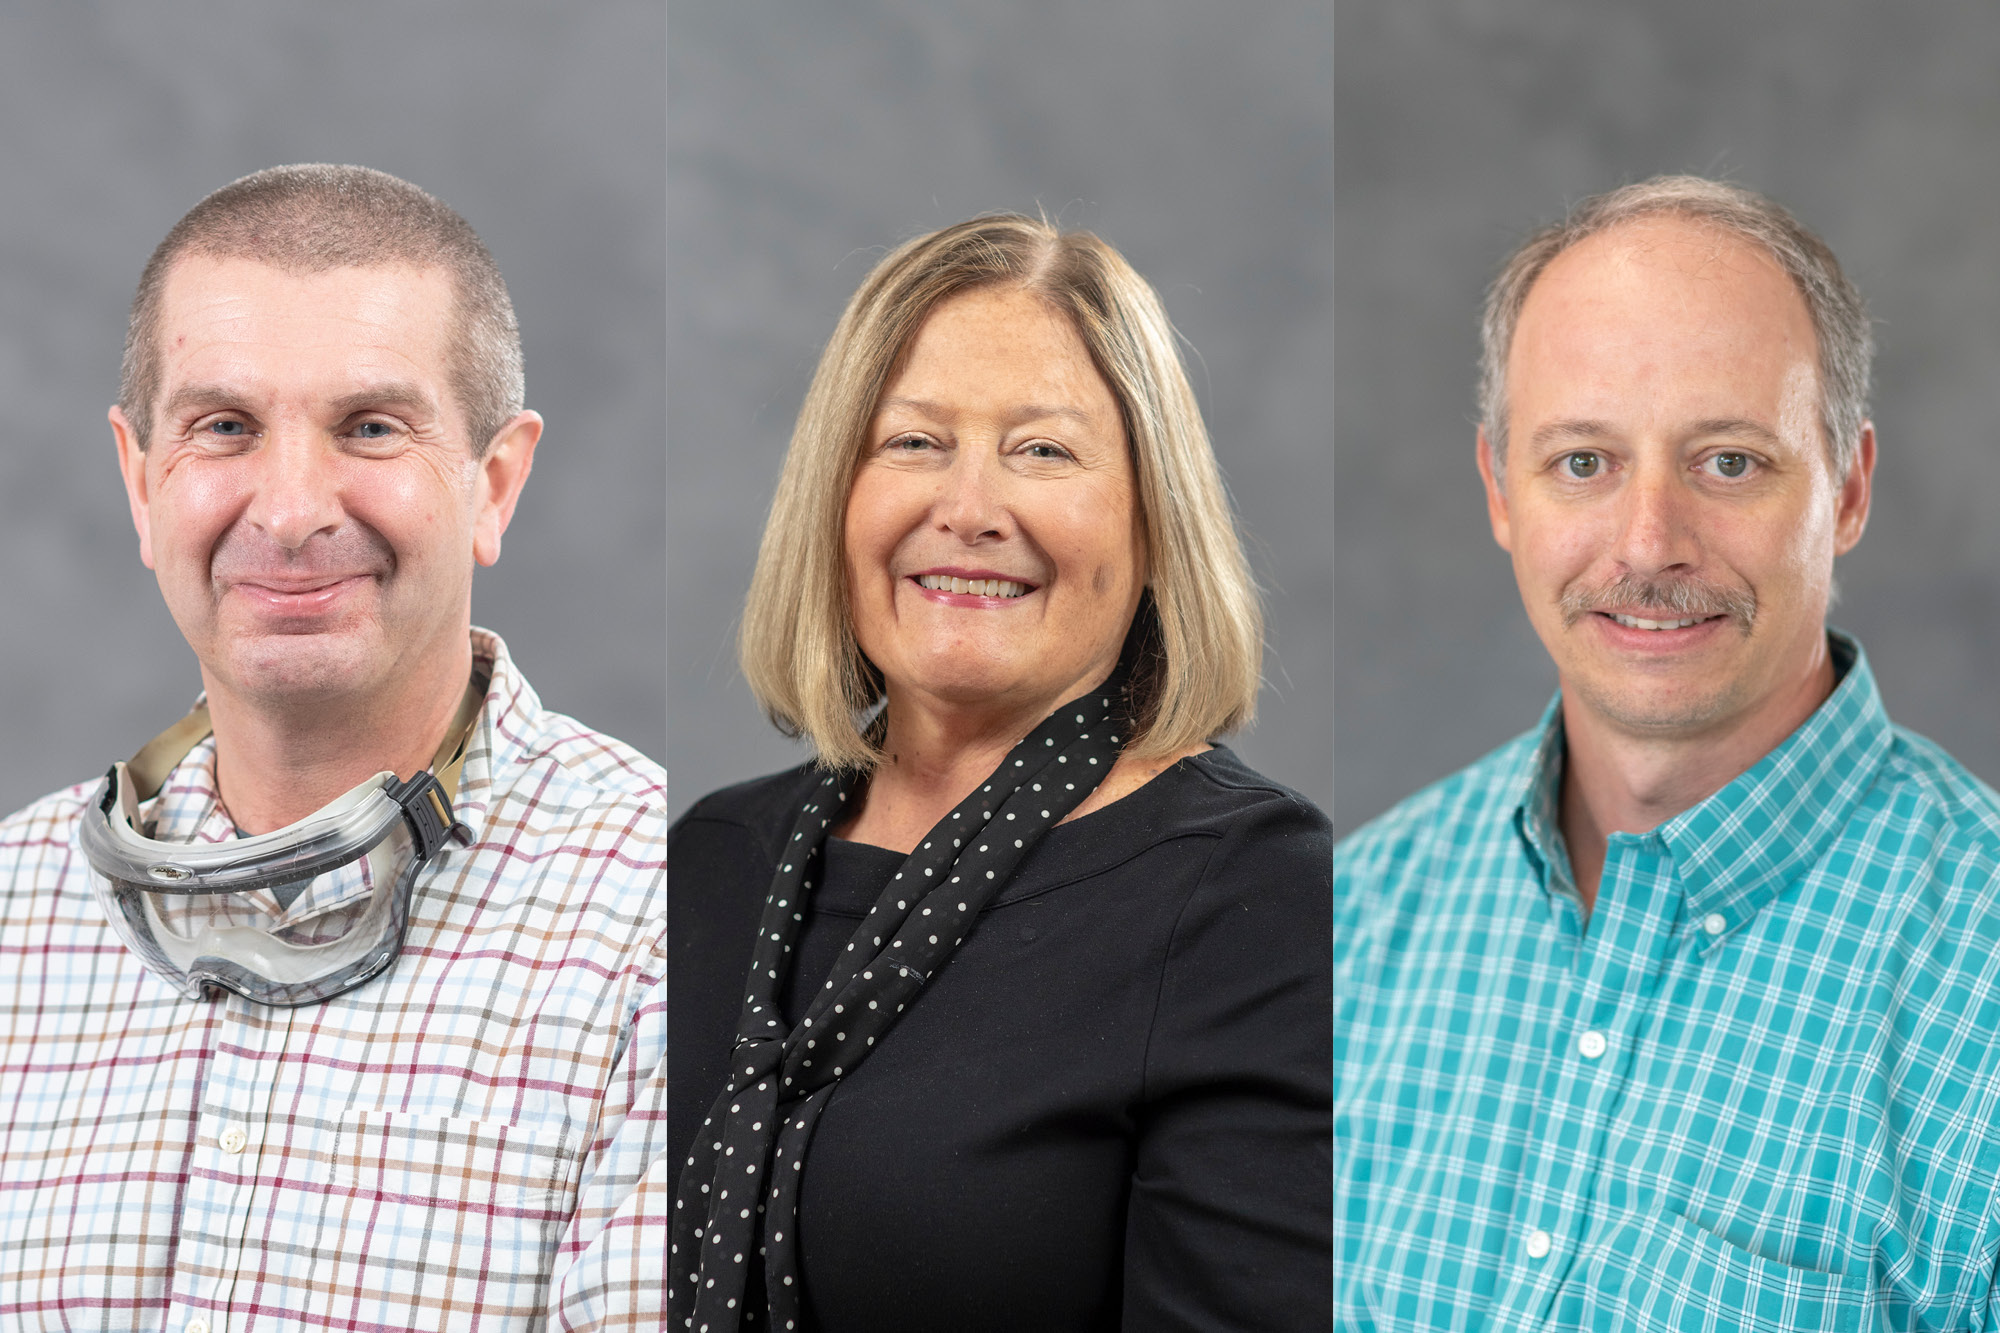 Excellence Winners – David Baker, Ginny Pryzgocki, Terry Morse